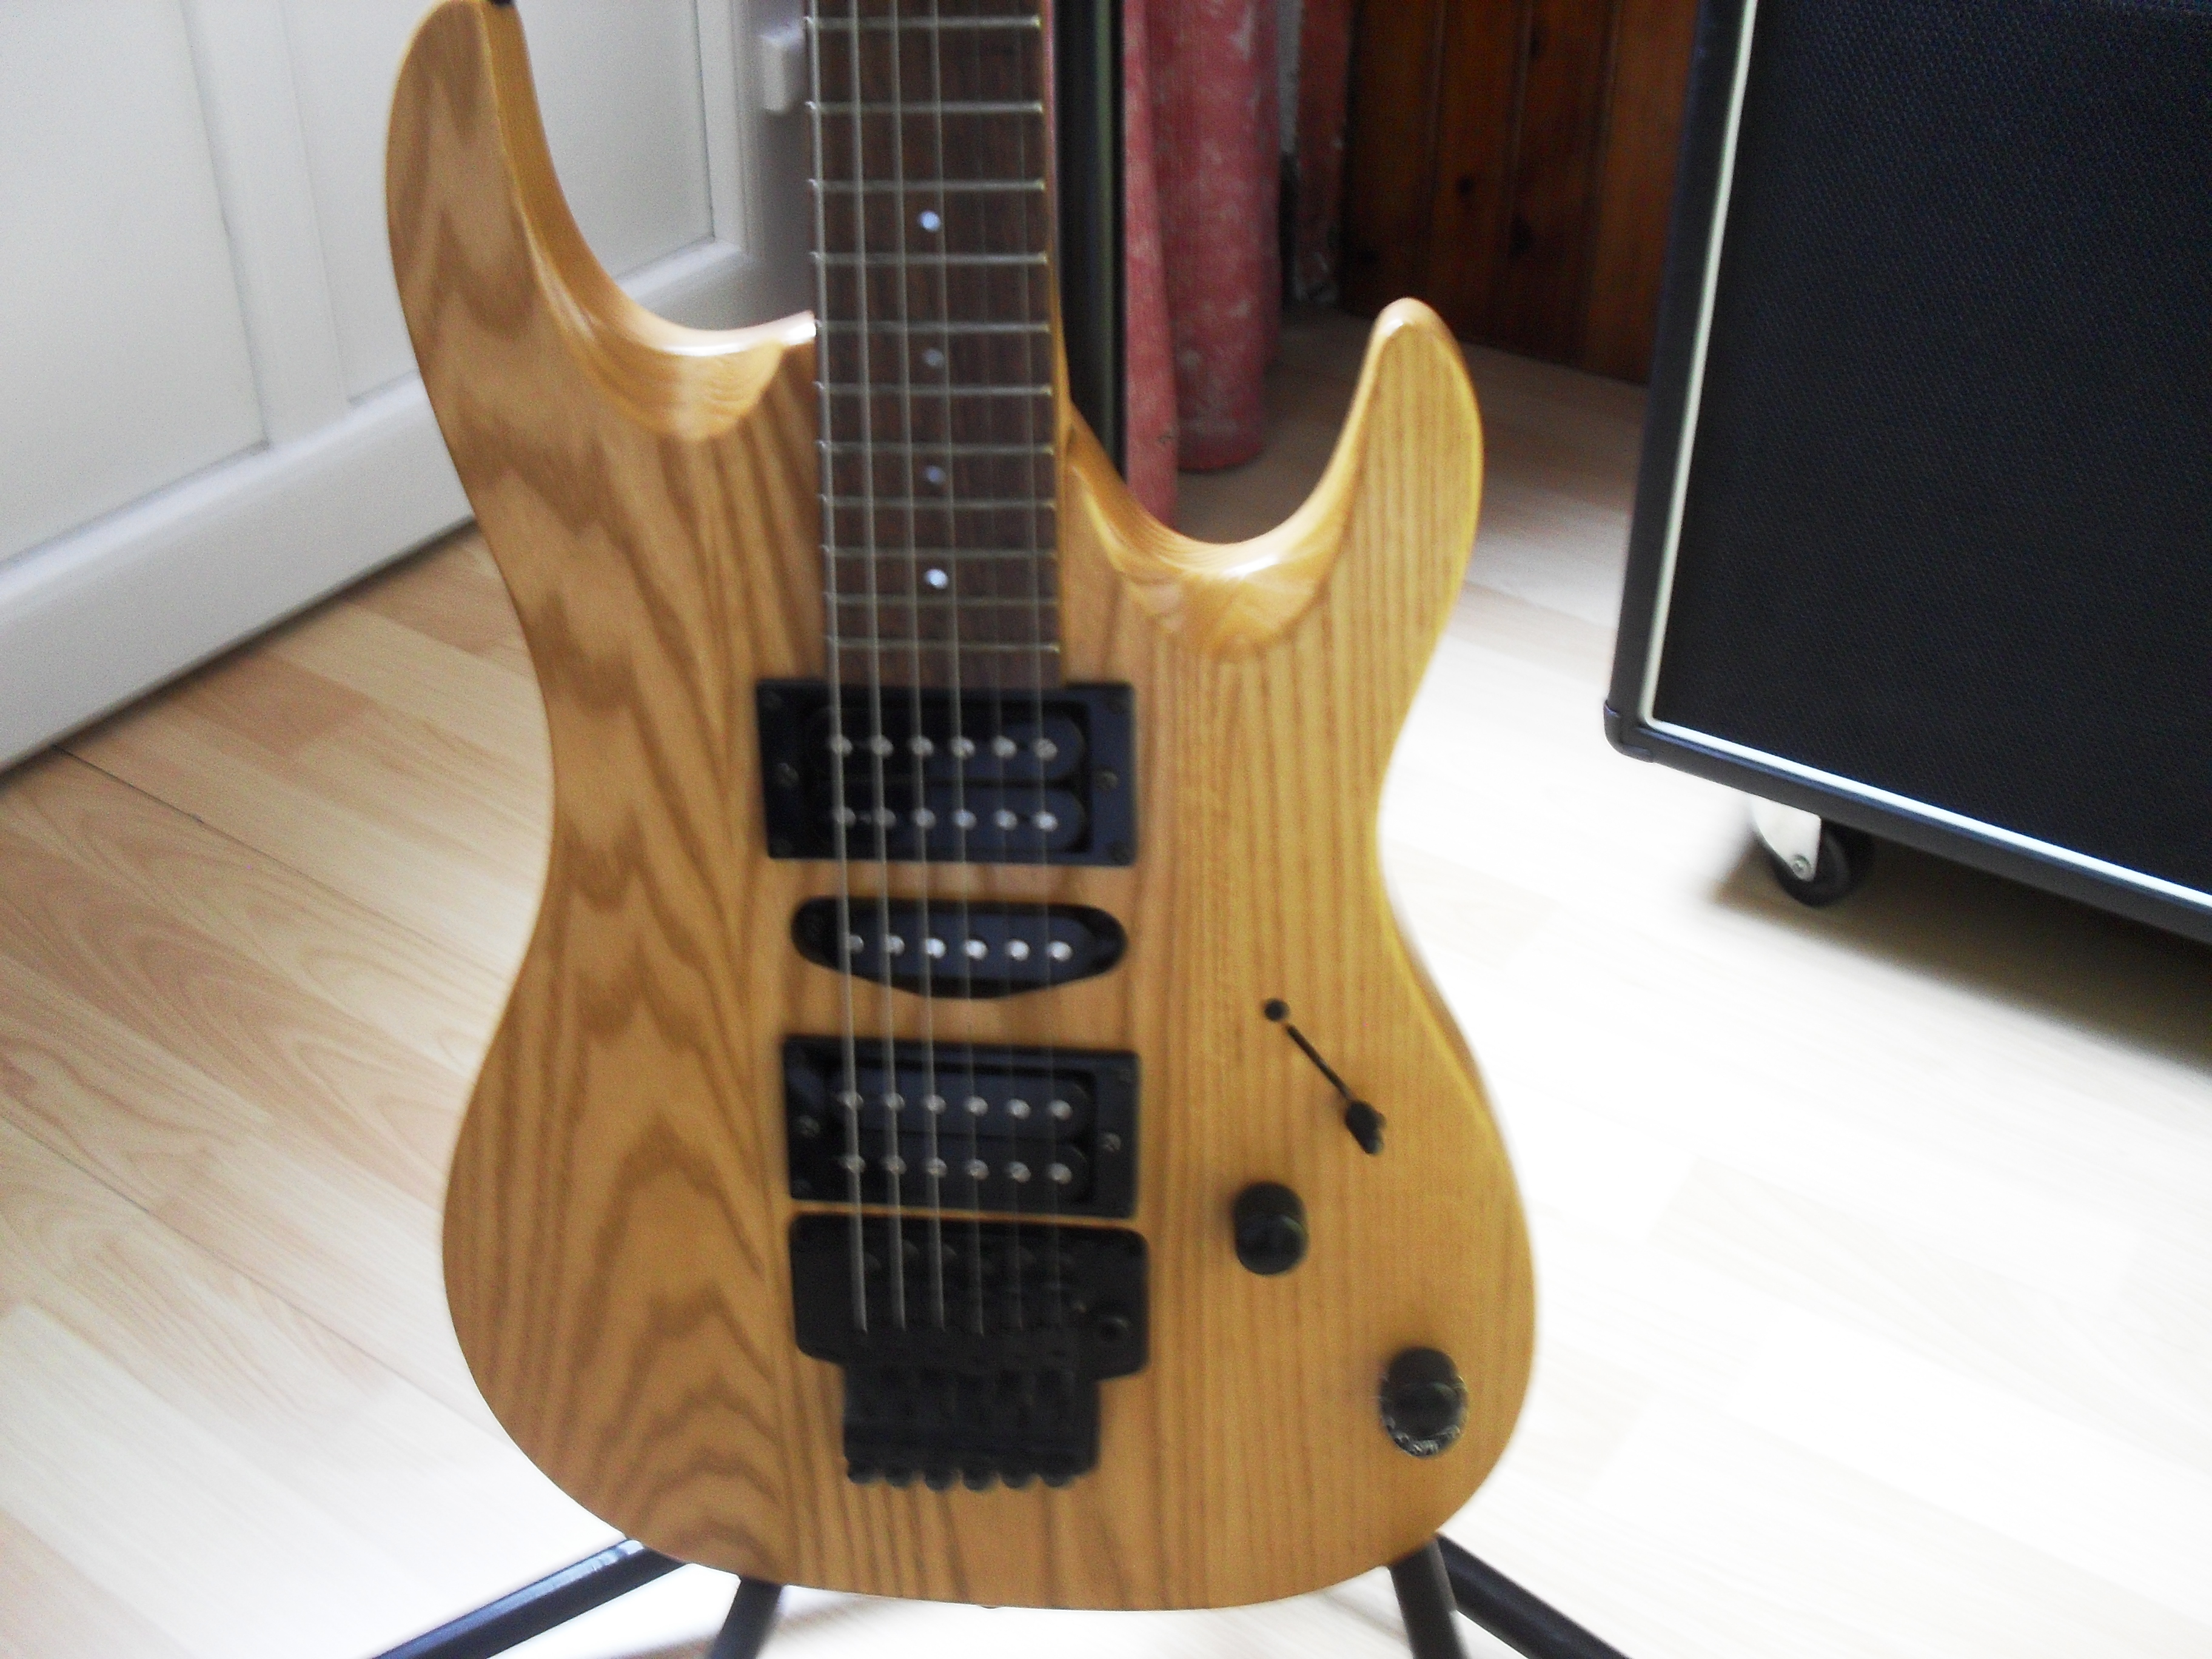 aria pro ii serial dating I cannot find a website where i can find my guitar's details by serial number it's an aria pro ii not exactly your common guitar any ideas, please.